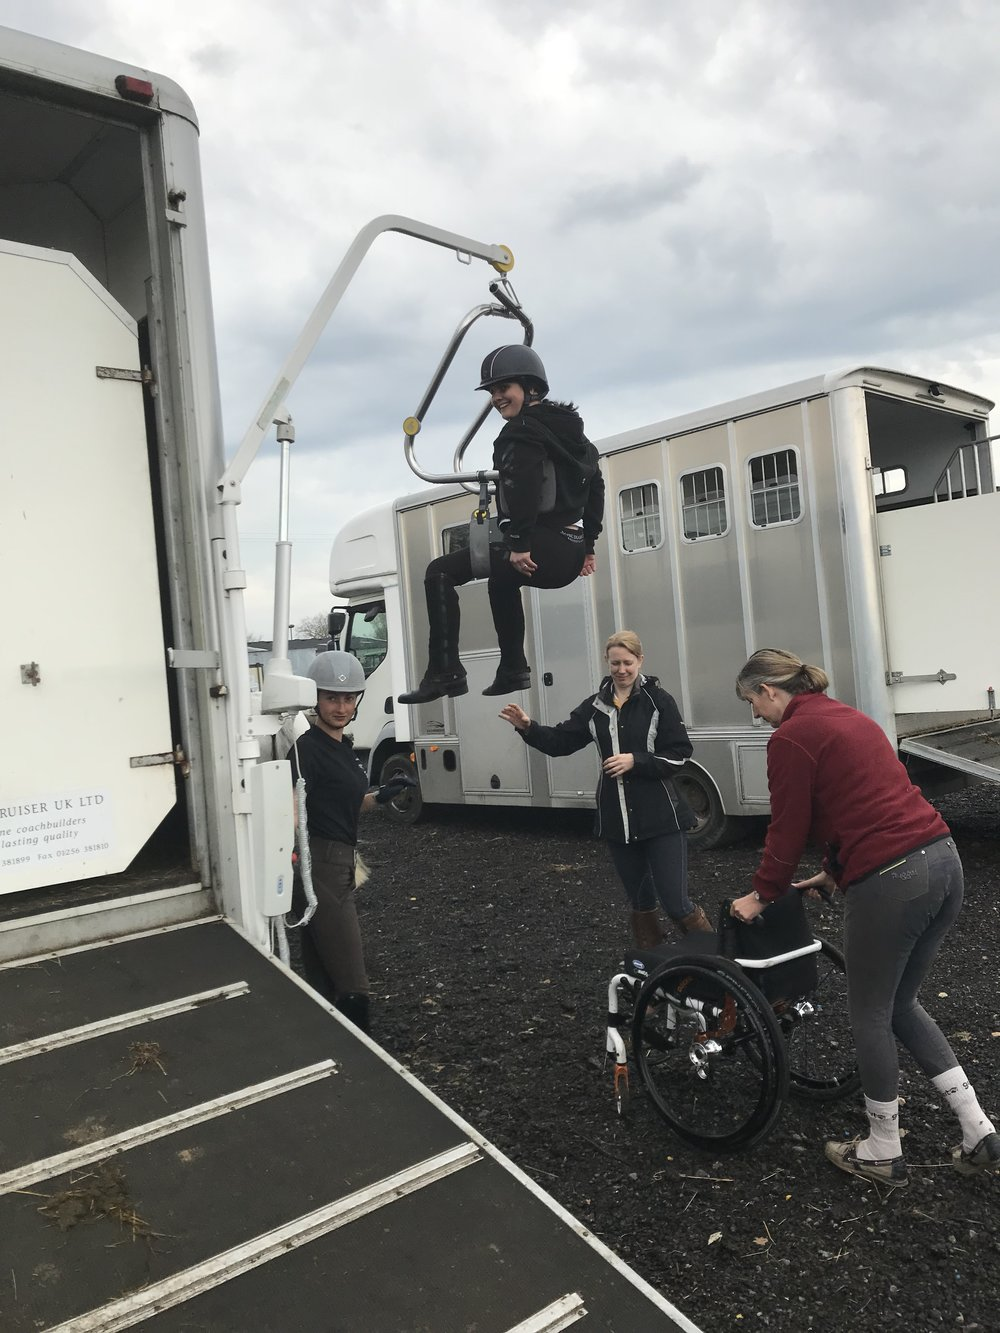 This was the first time Sallyanne had used the hoist away from home